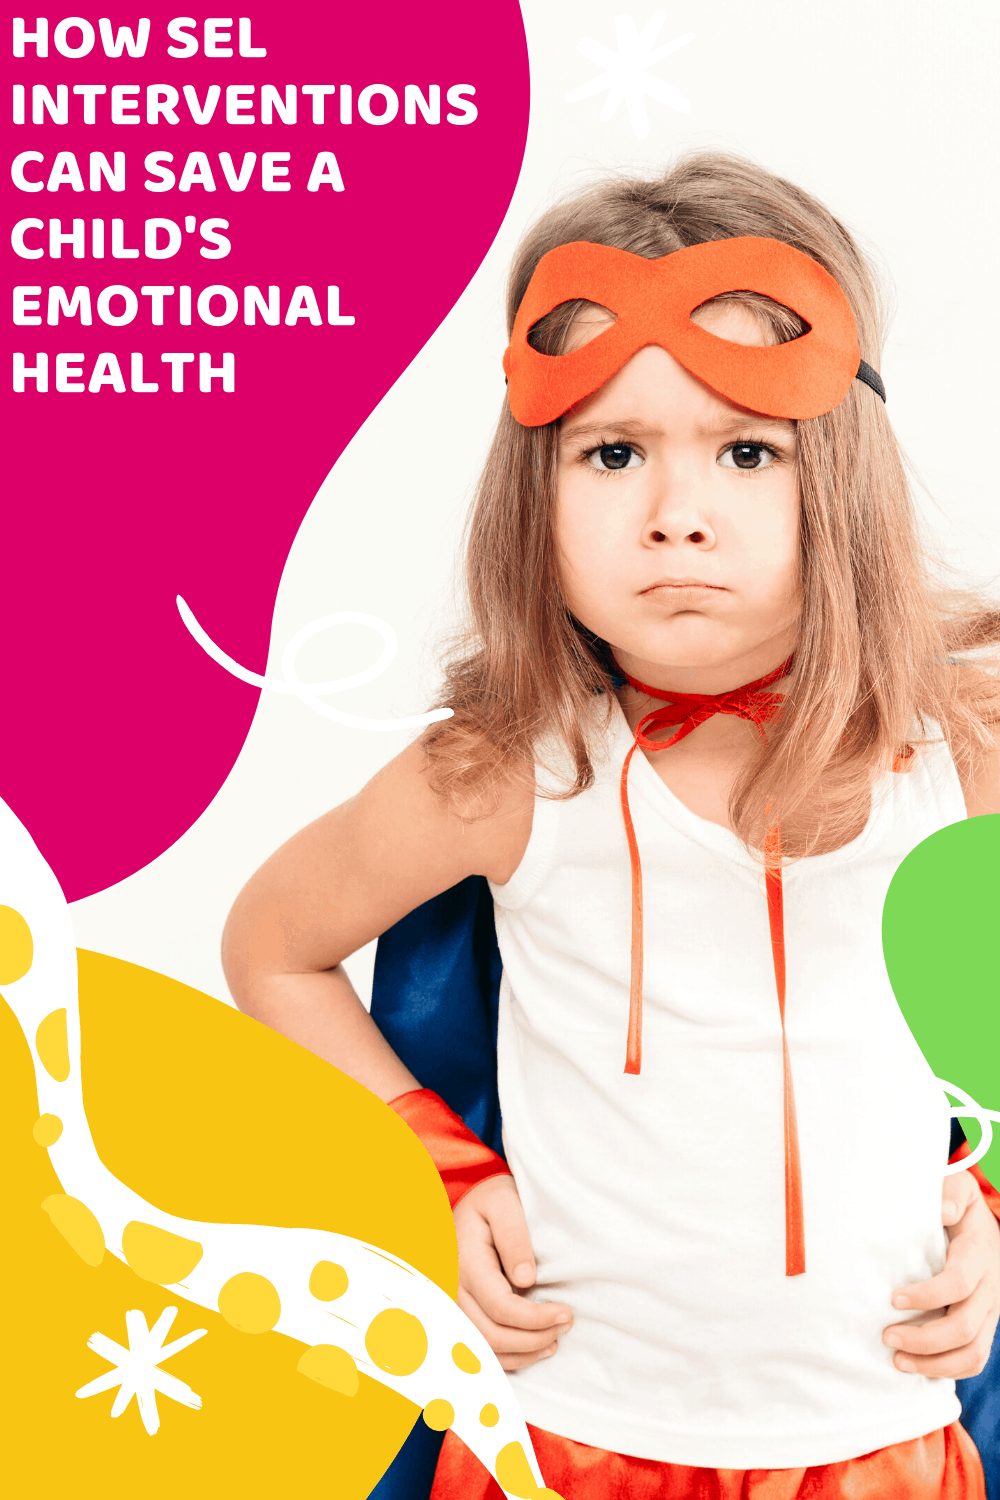 How Social and Emotional Learning Interventions Can Save a Child's Emotional Wellbeing